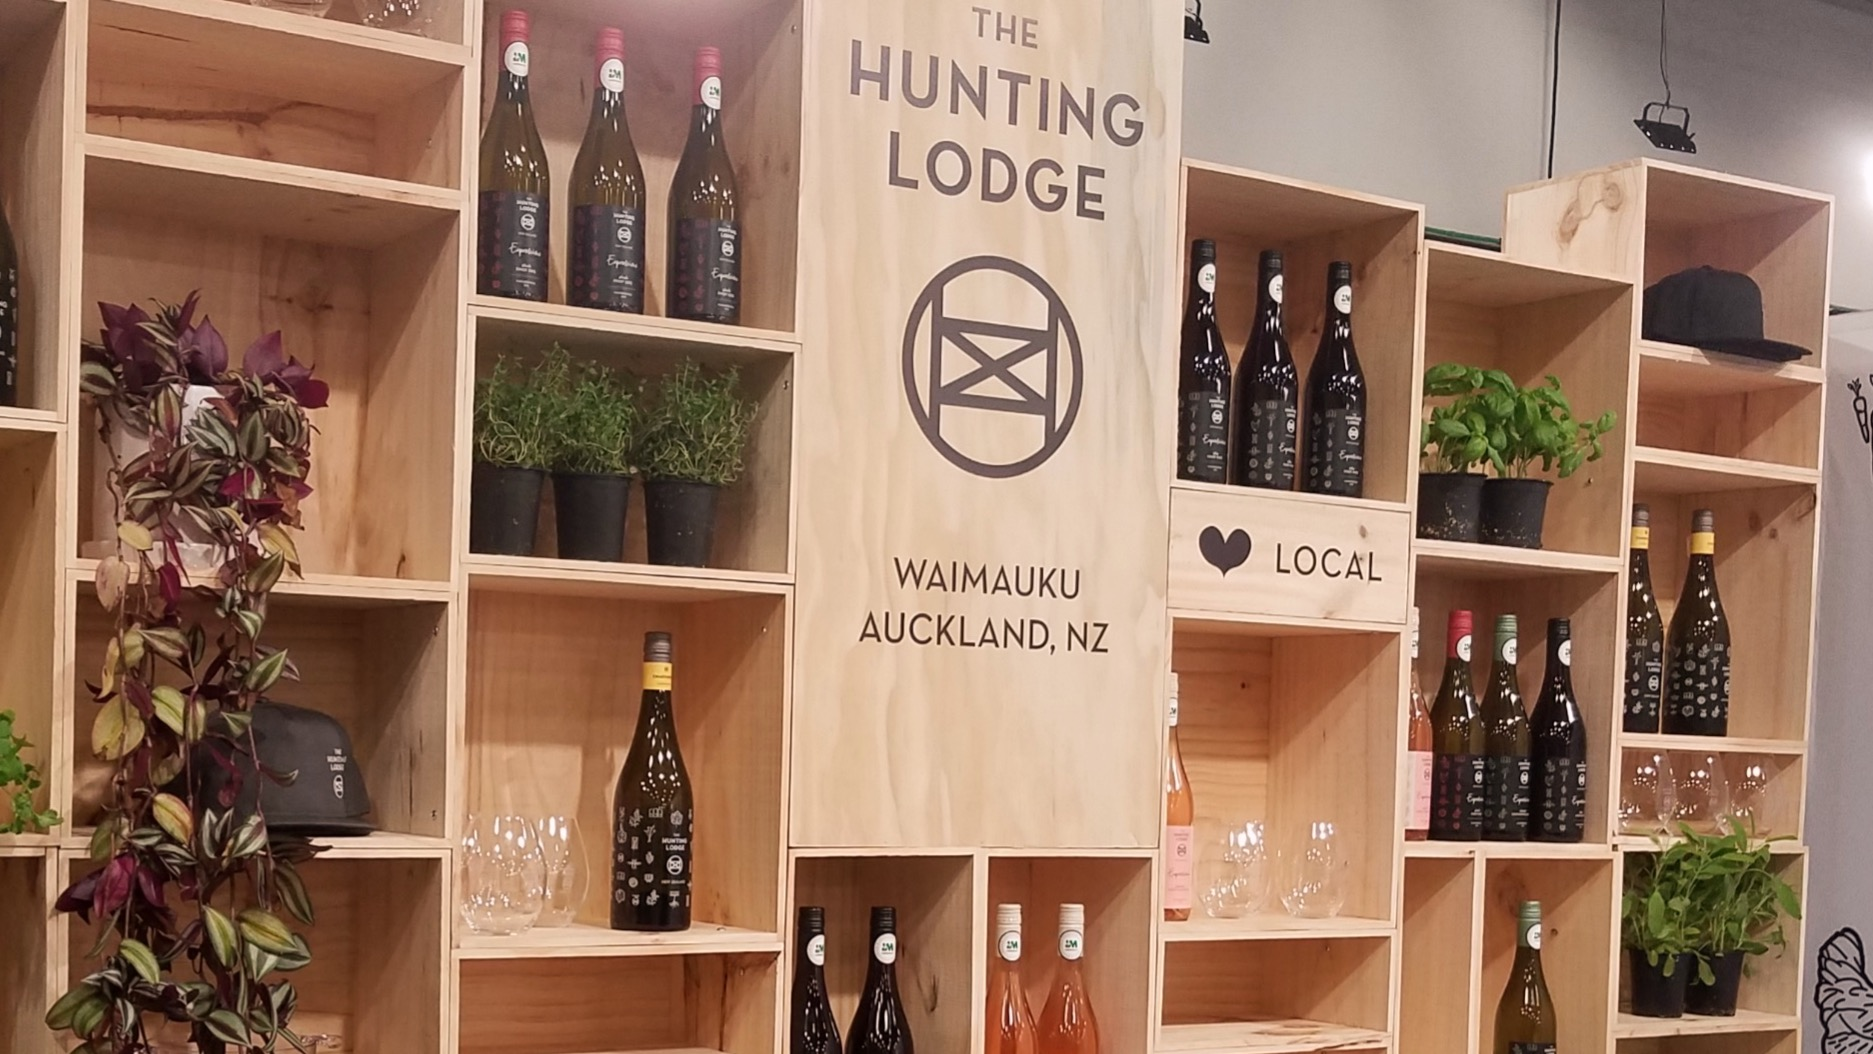 THE HUNTING LODGE  FOOD SHOW 2019